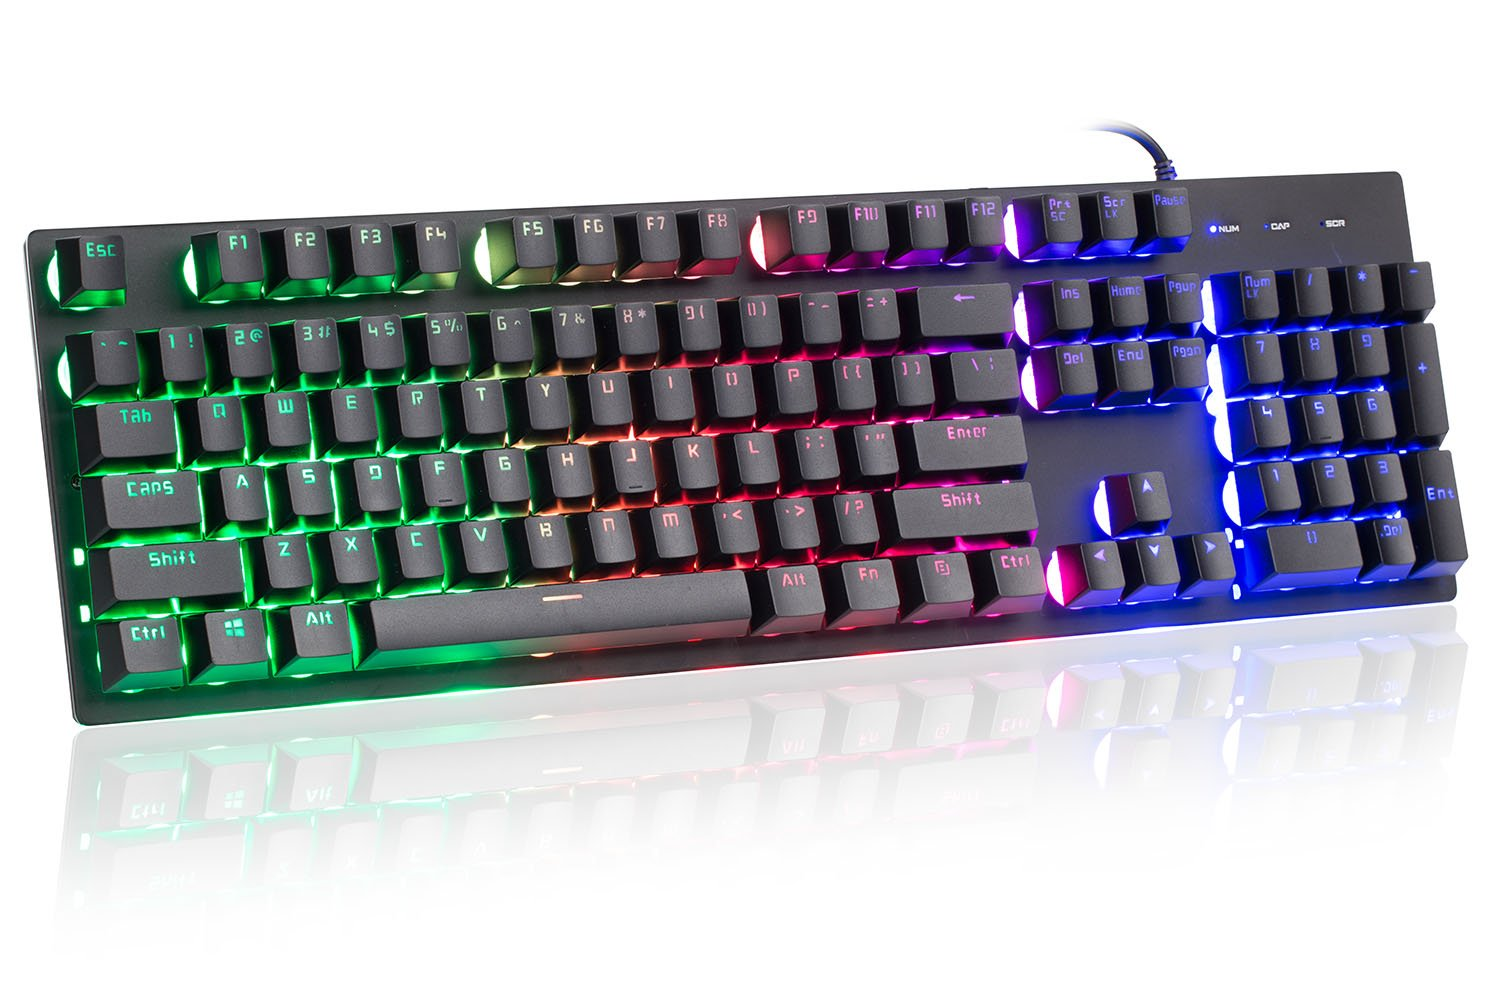 Wired Gaming Keyboard with RGB Rainbow LED Backlit, Mechanical Feeling with Multimedia keys, Waterproof and Llluminated Wired USB Keyboard for Windows 2000/XP/VISTA/7/8/10 & Linux - Black